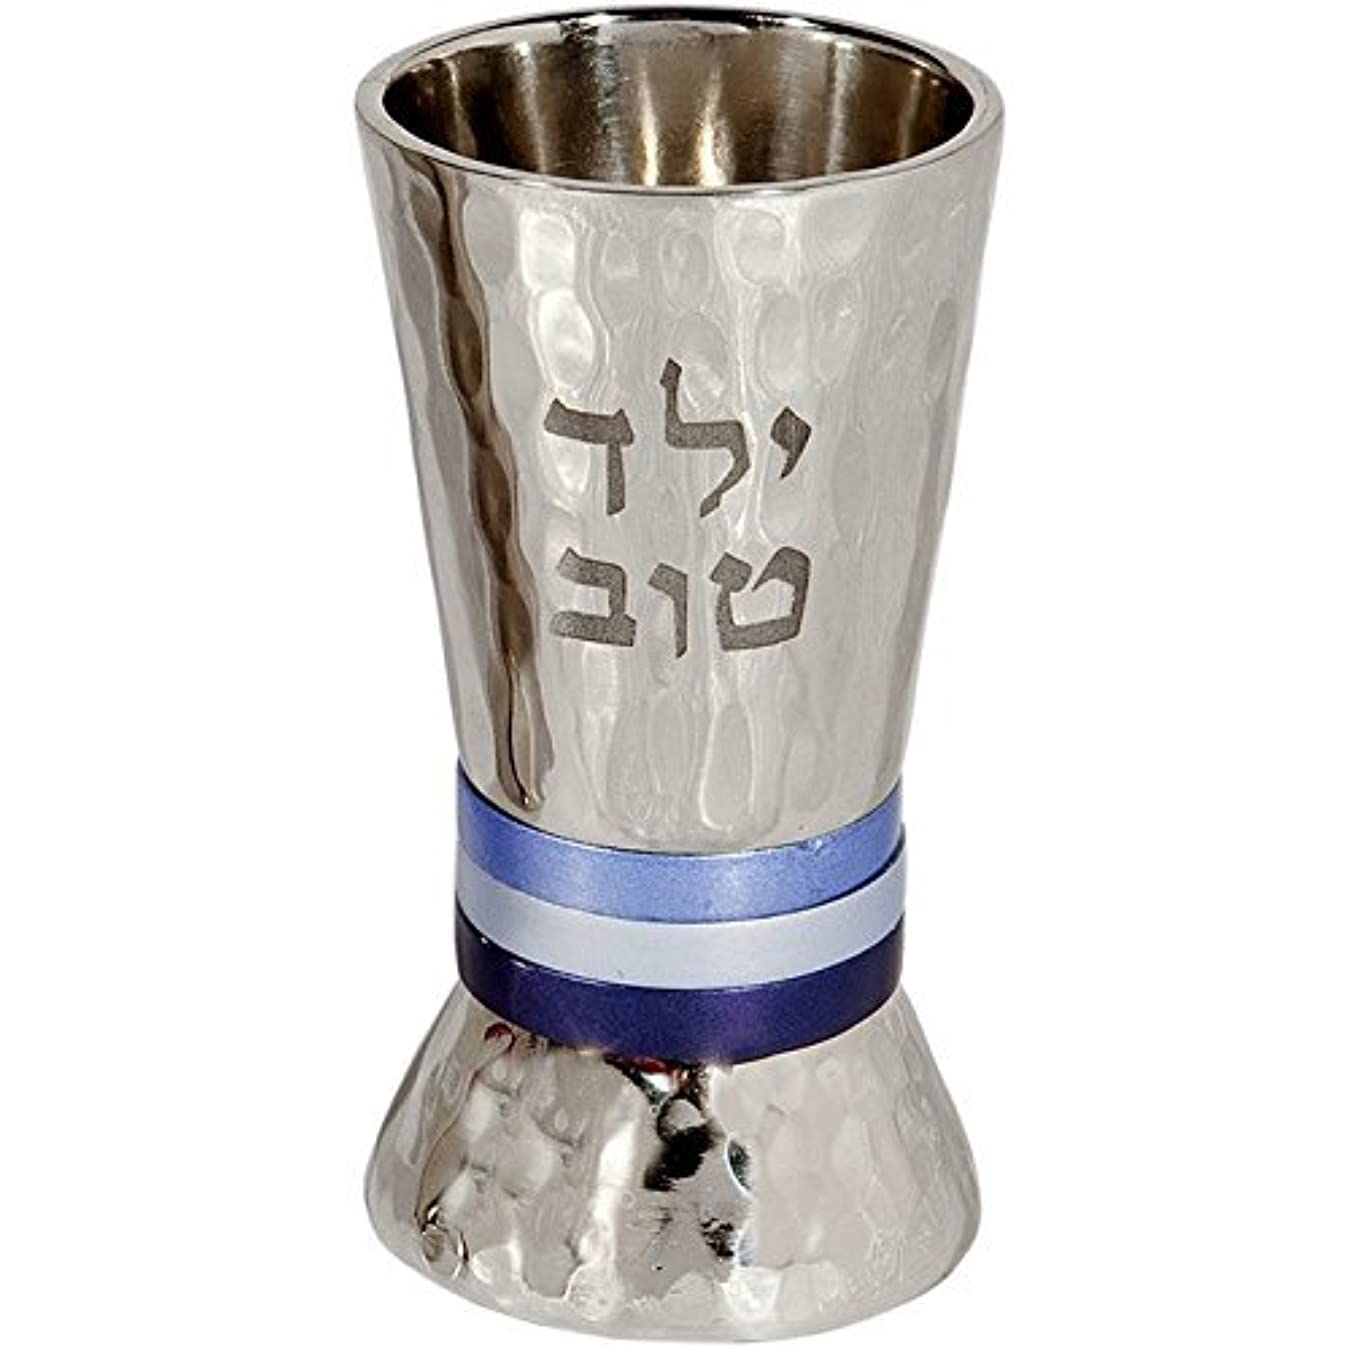 Yair Emanuel Good Boy Yeled Tov Child Kiddush Cup Hammered Metal with Silver and Blue Rings  | YTO-1